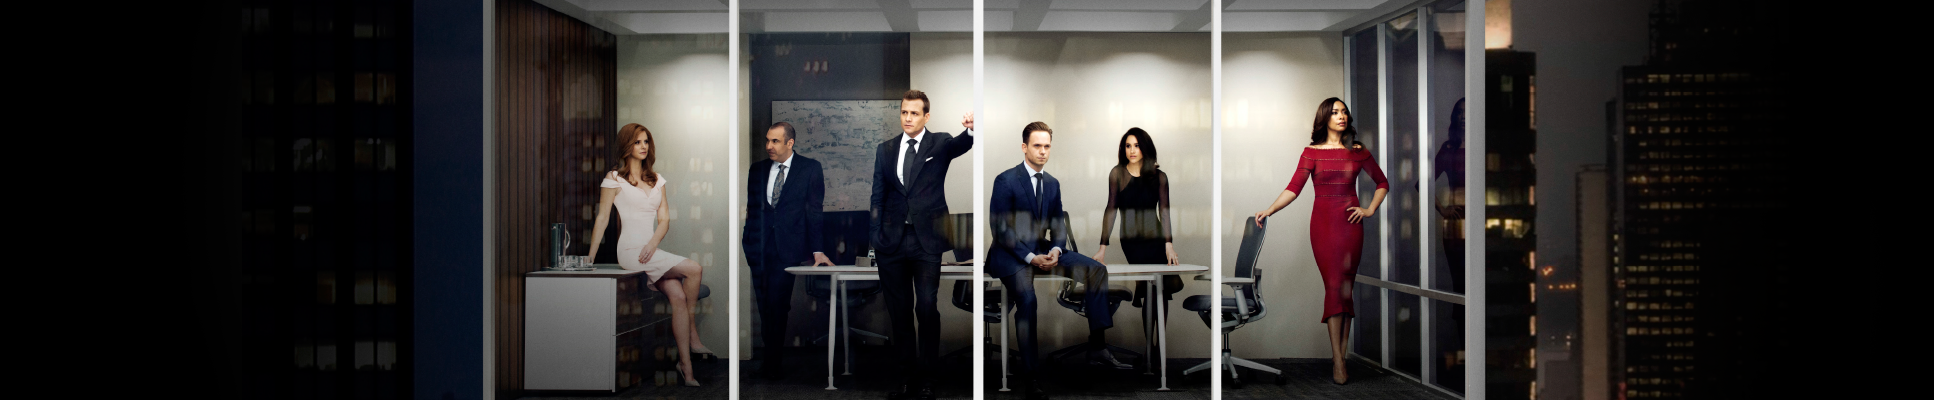 harvey specter gifs get the best gif on giphy harvey specter gifs get the best gif